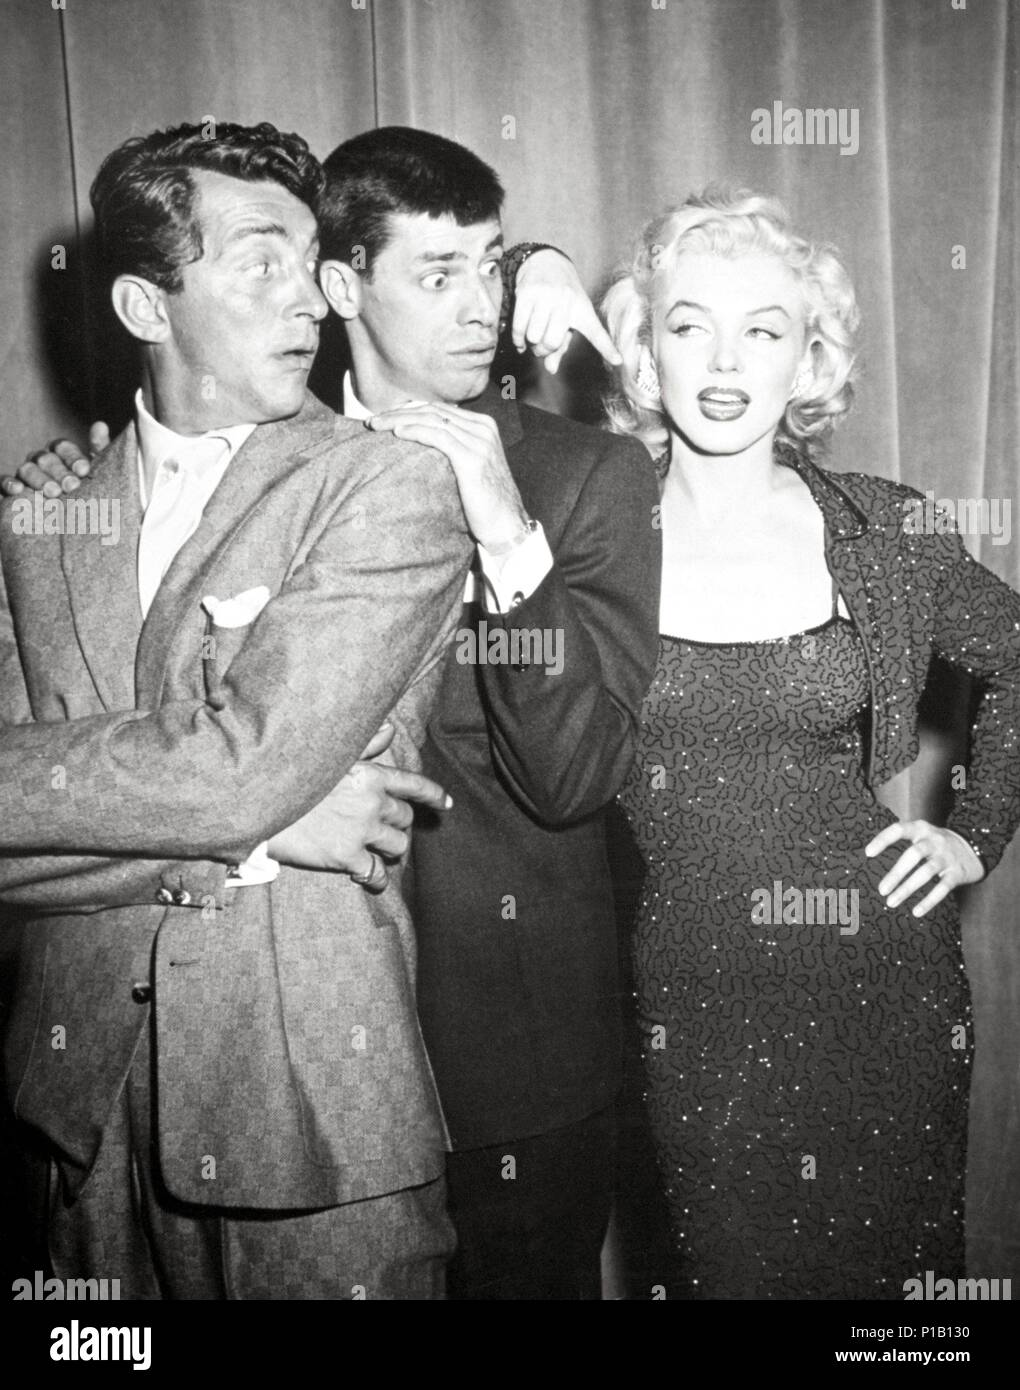 Not know, jerry lewis dean martin marilyn monroe